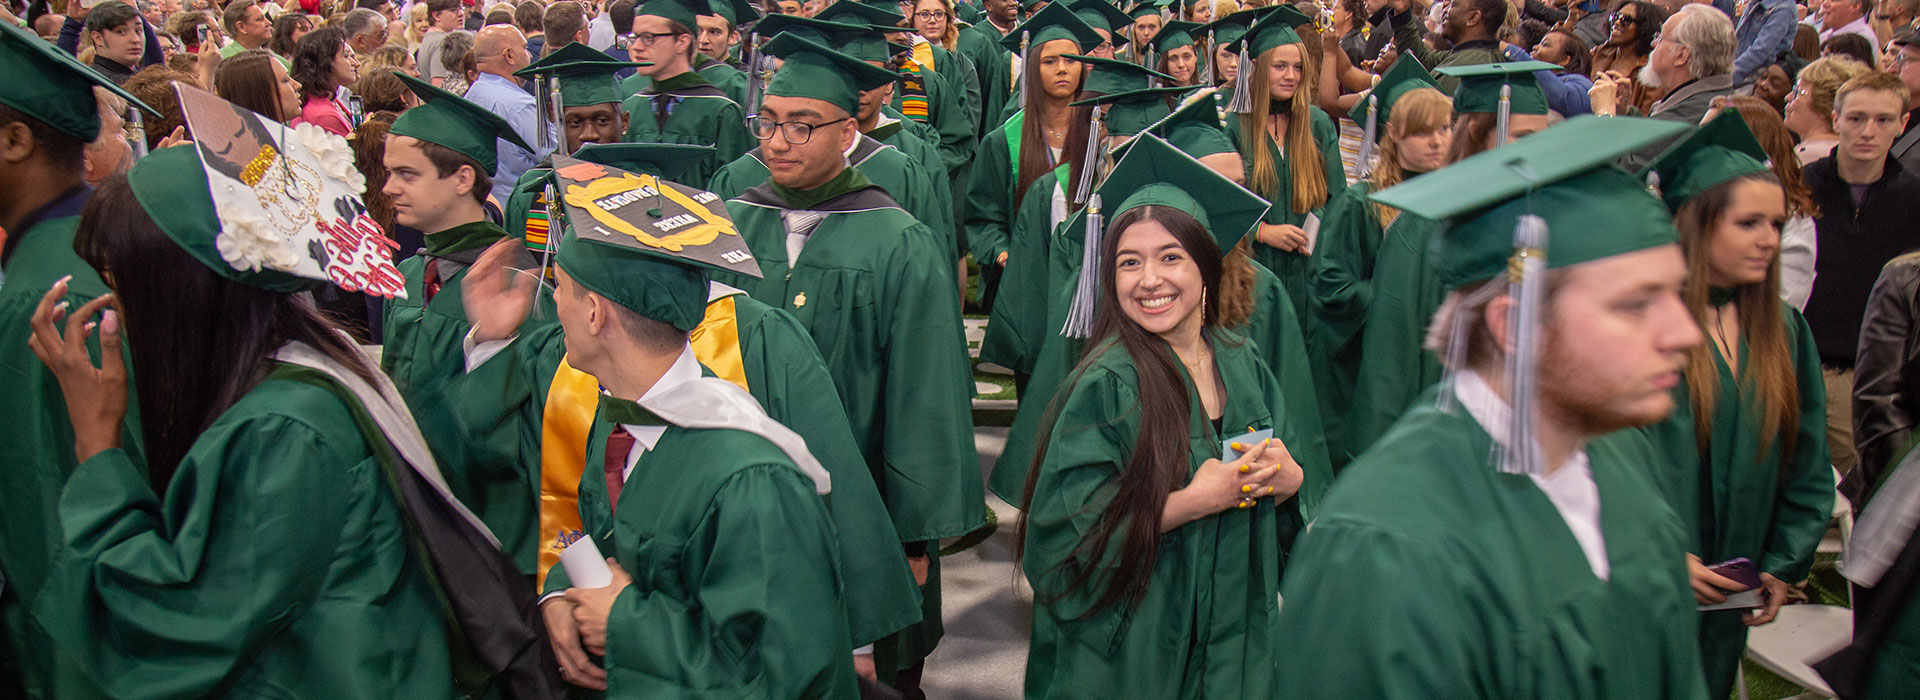 SUNY Morrisville students attend Commencement